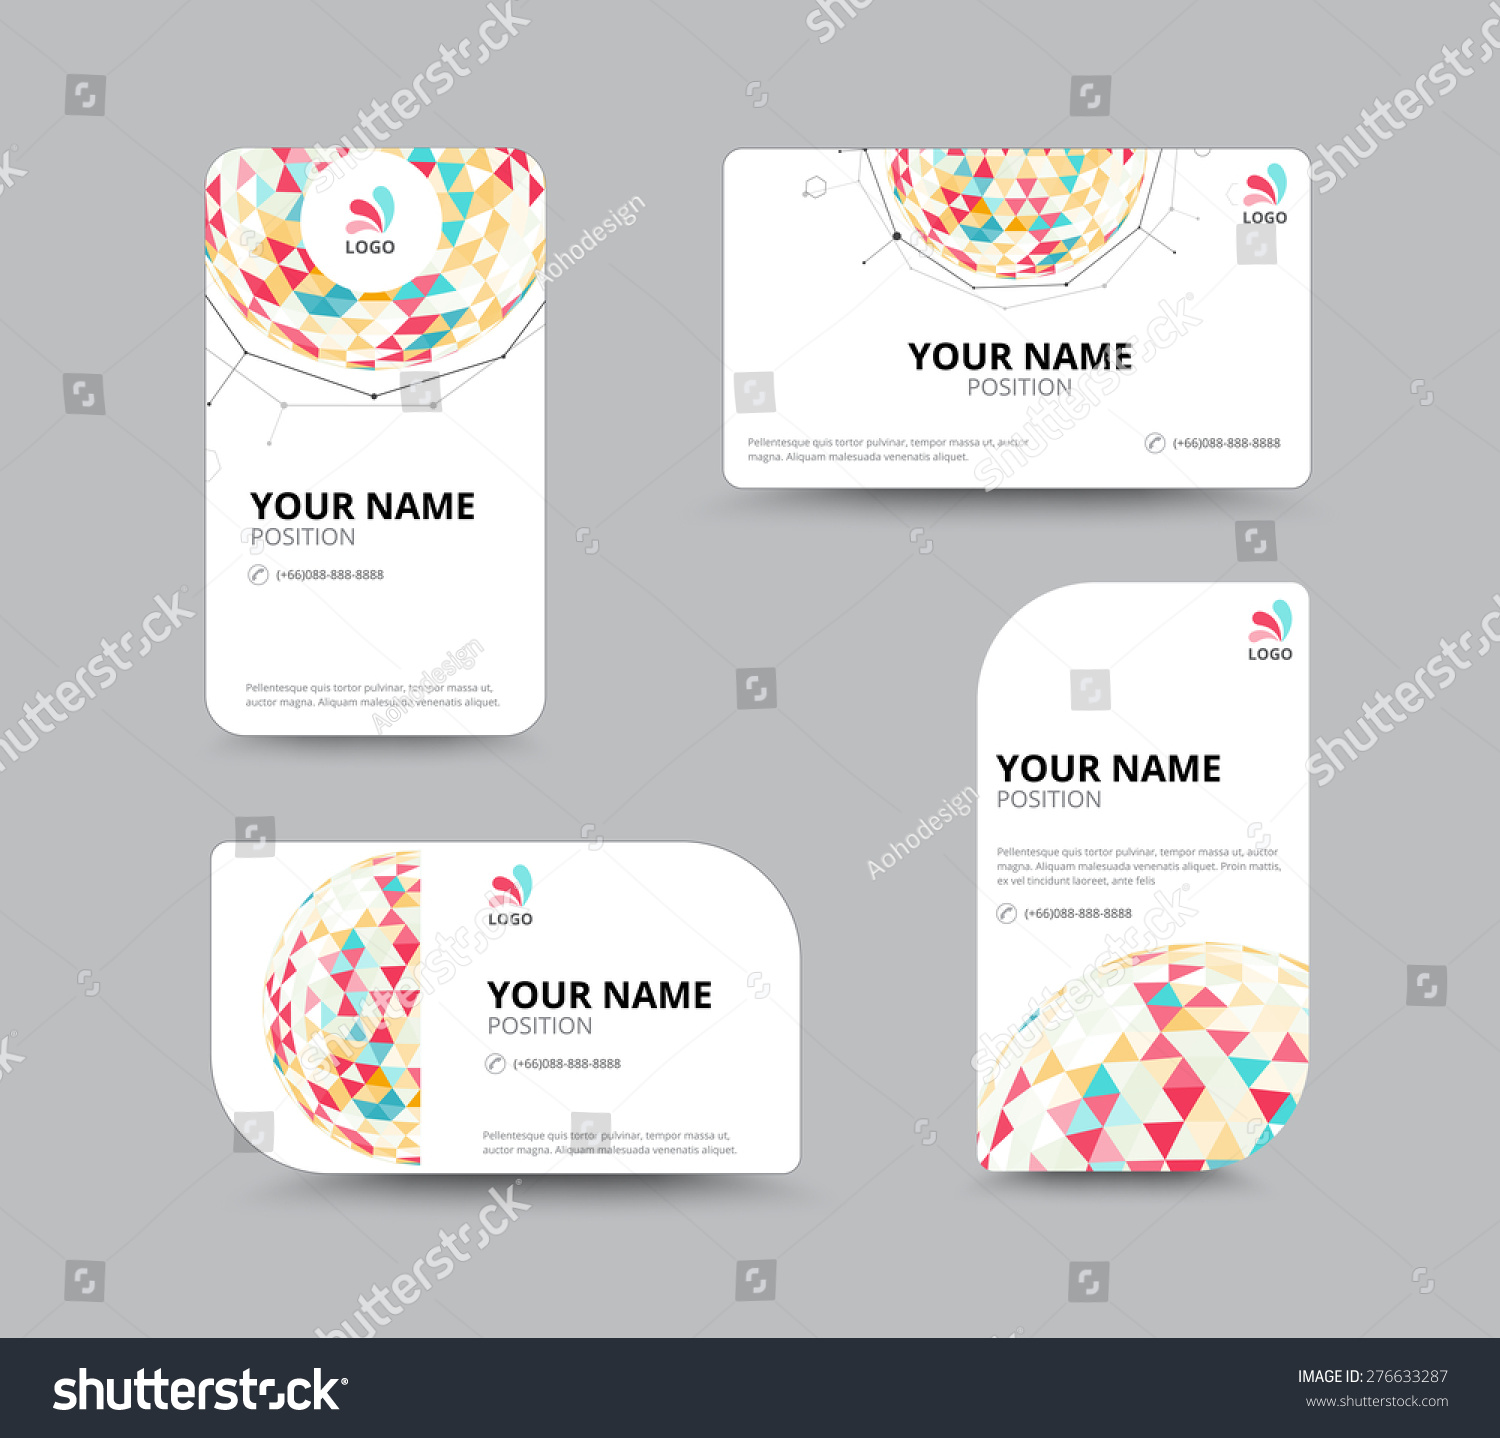 Best Of Image Of Publisher Business Card Templates - Business ...